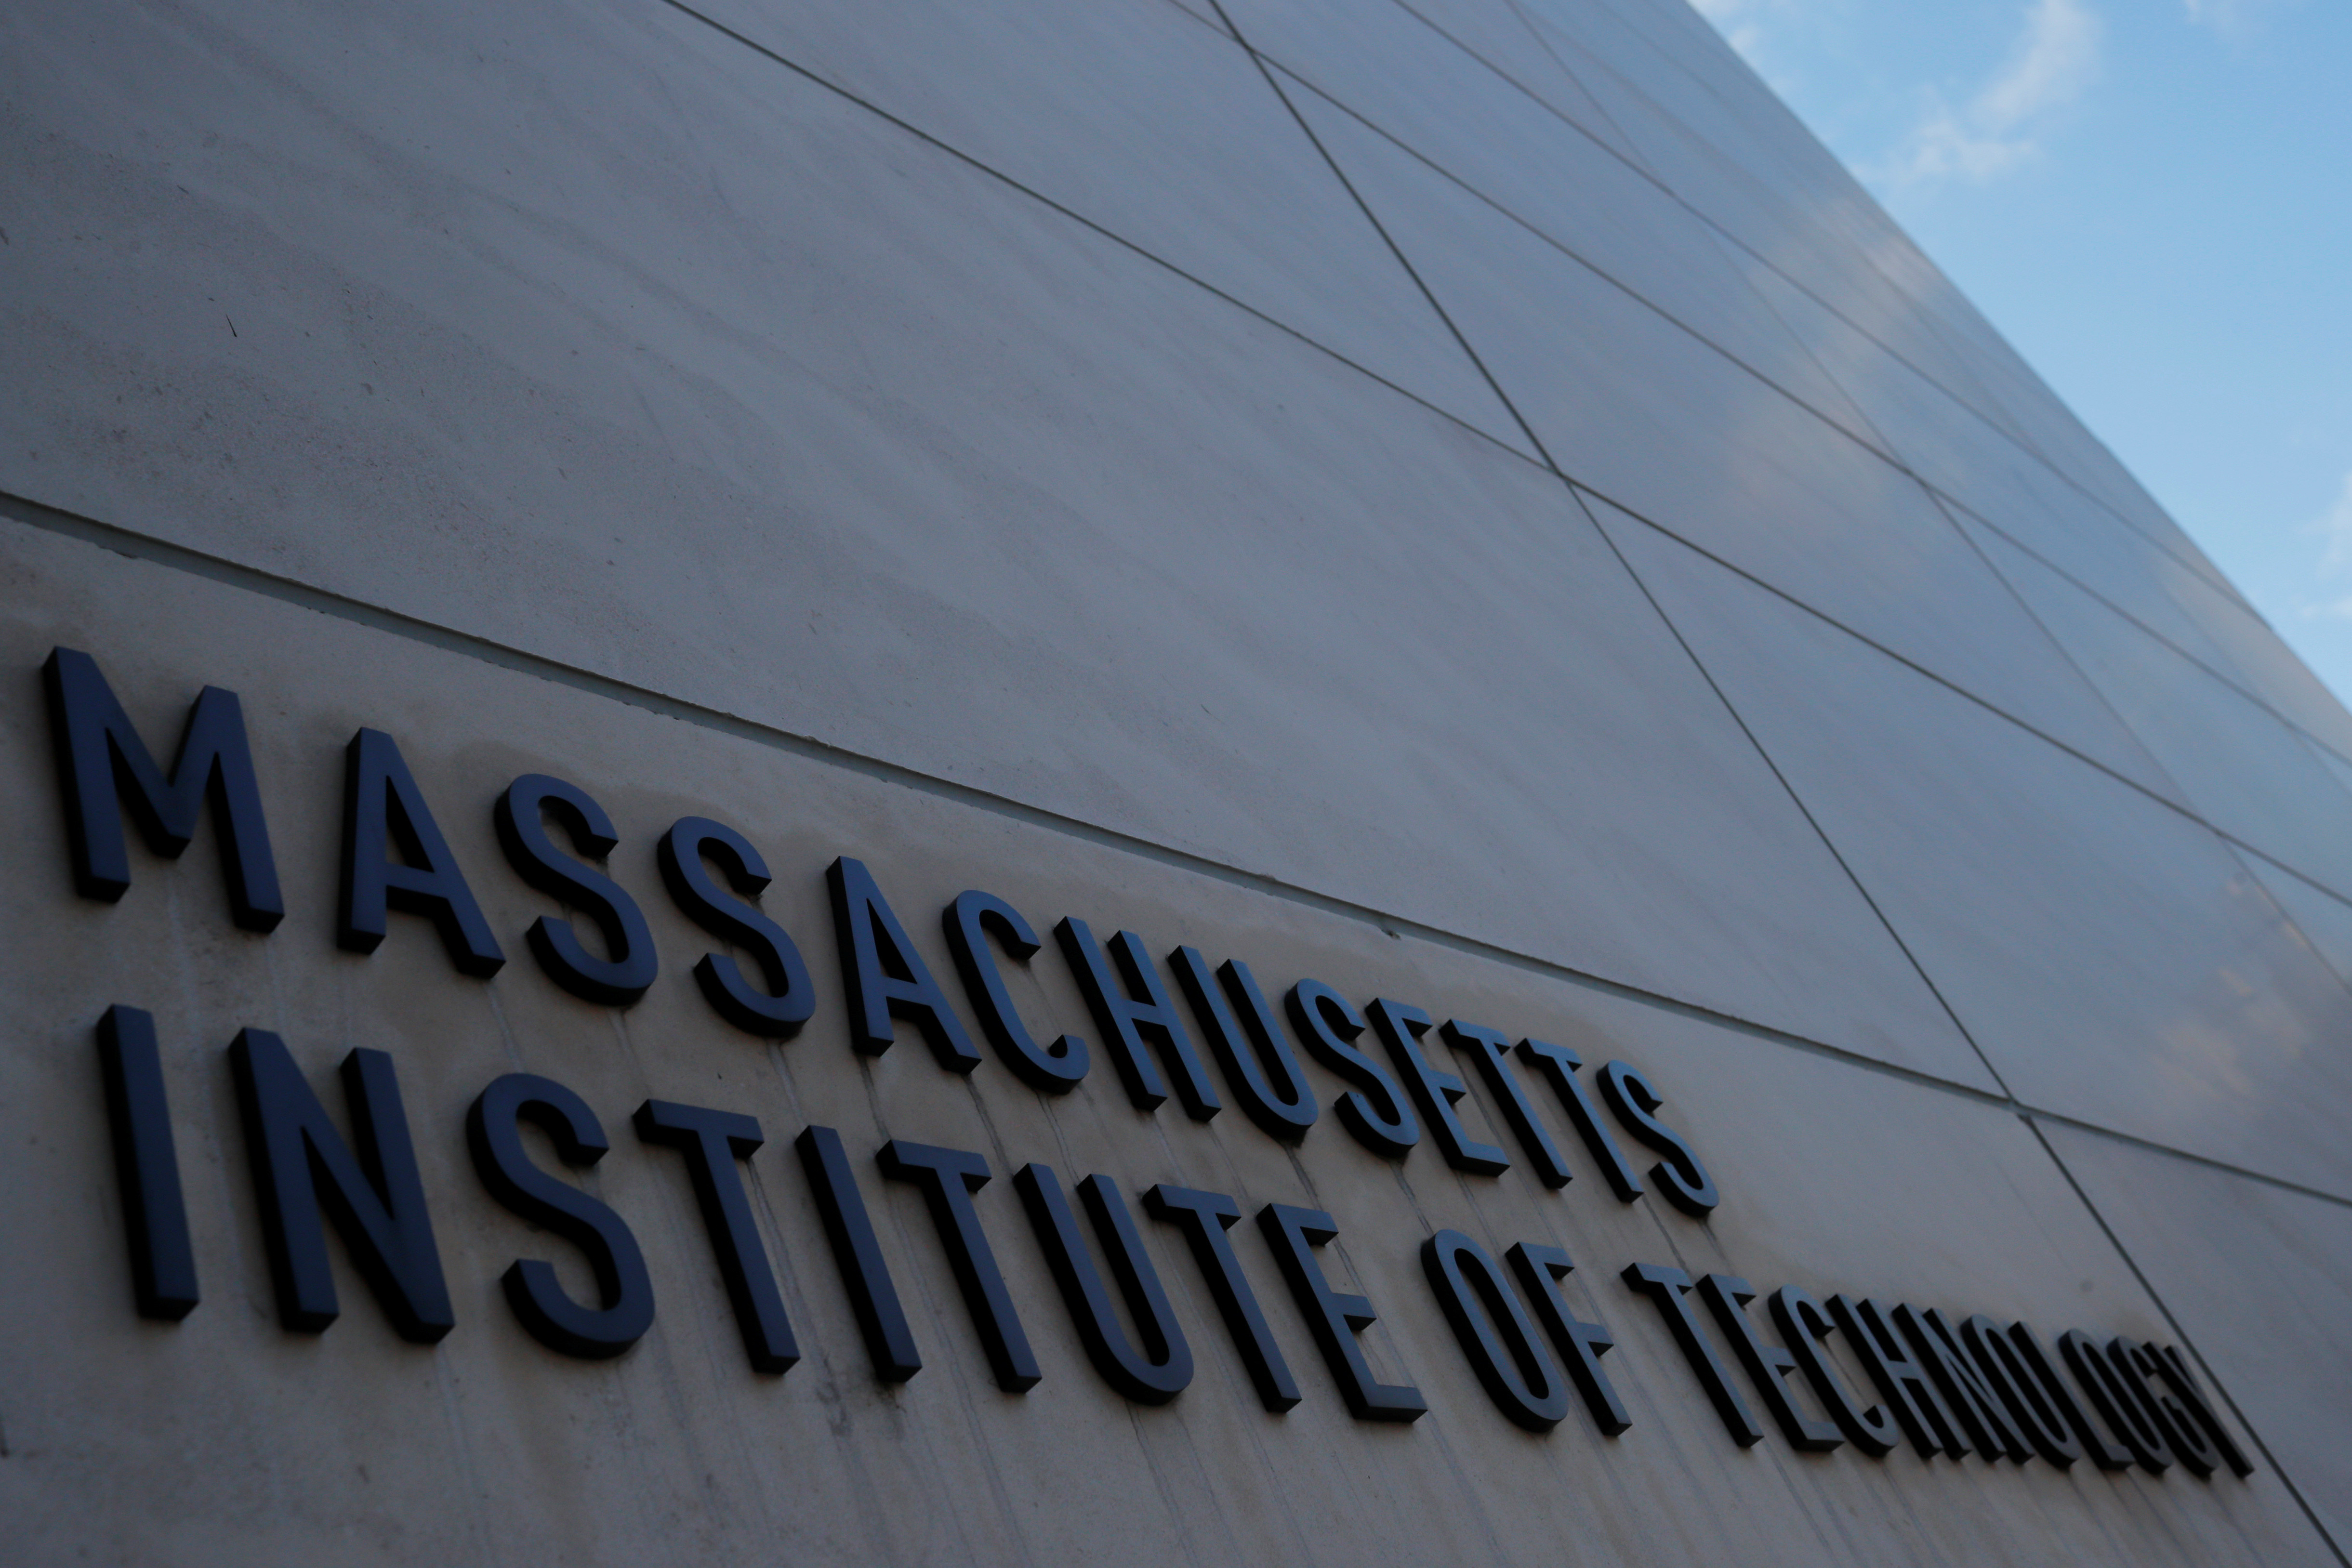 The sign at Building 76 at the Massachusetts Institute of Technology (MIT) in Cambridge, Massachusetts, U.S., November 21, 2018.